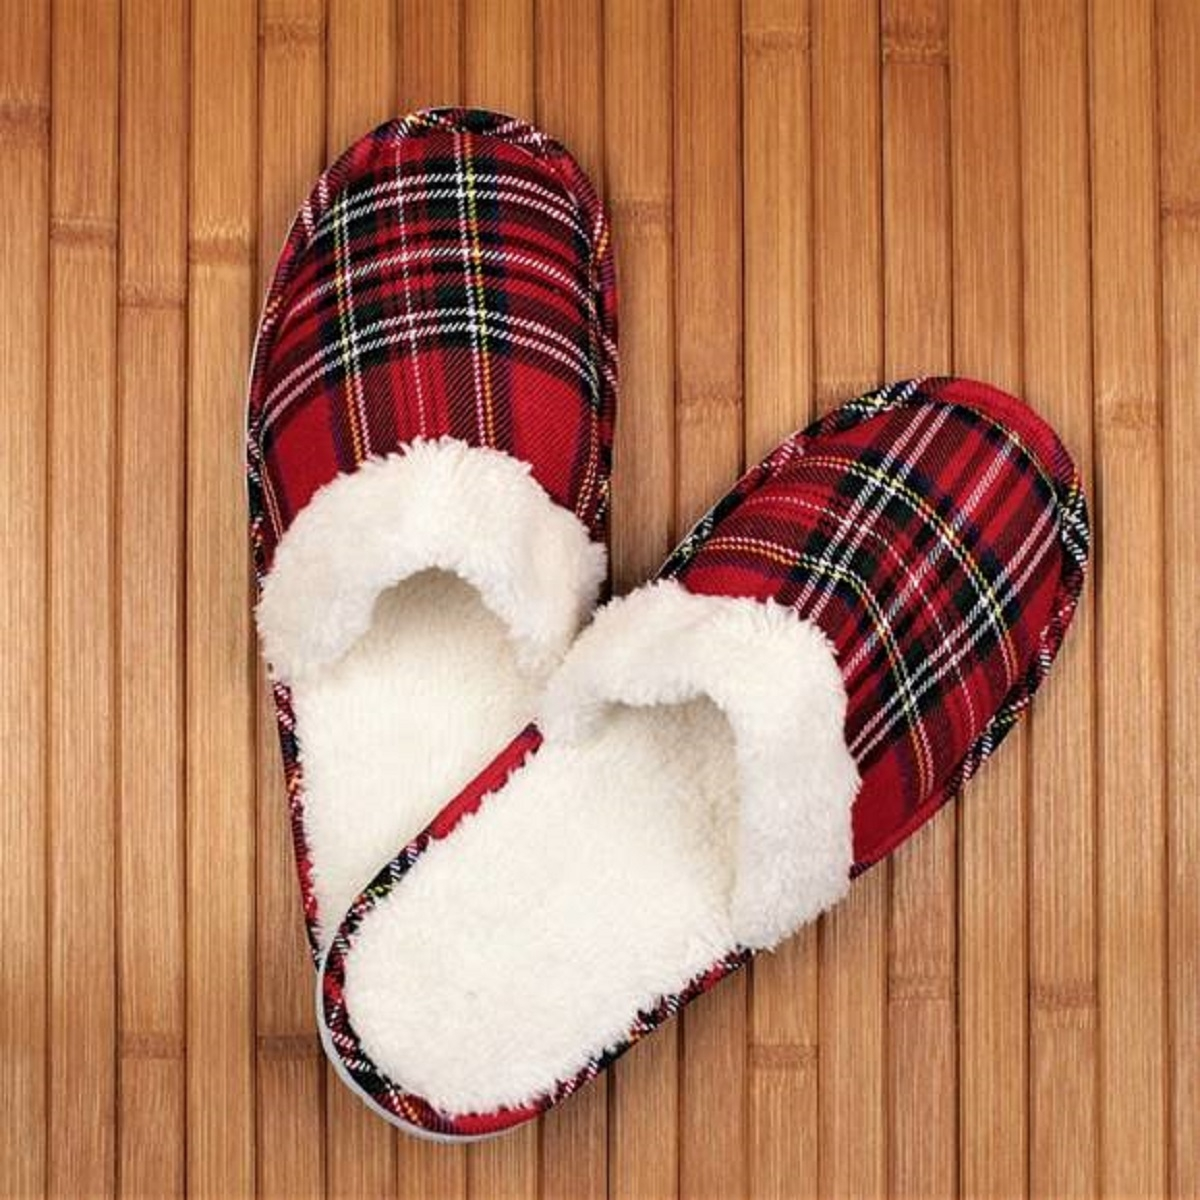 Red_slippers-1200.jpg